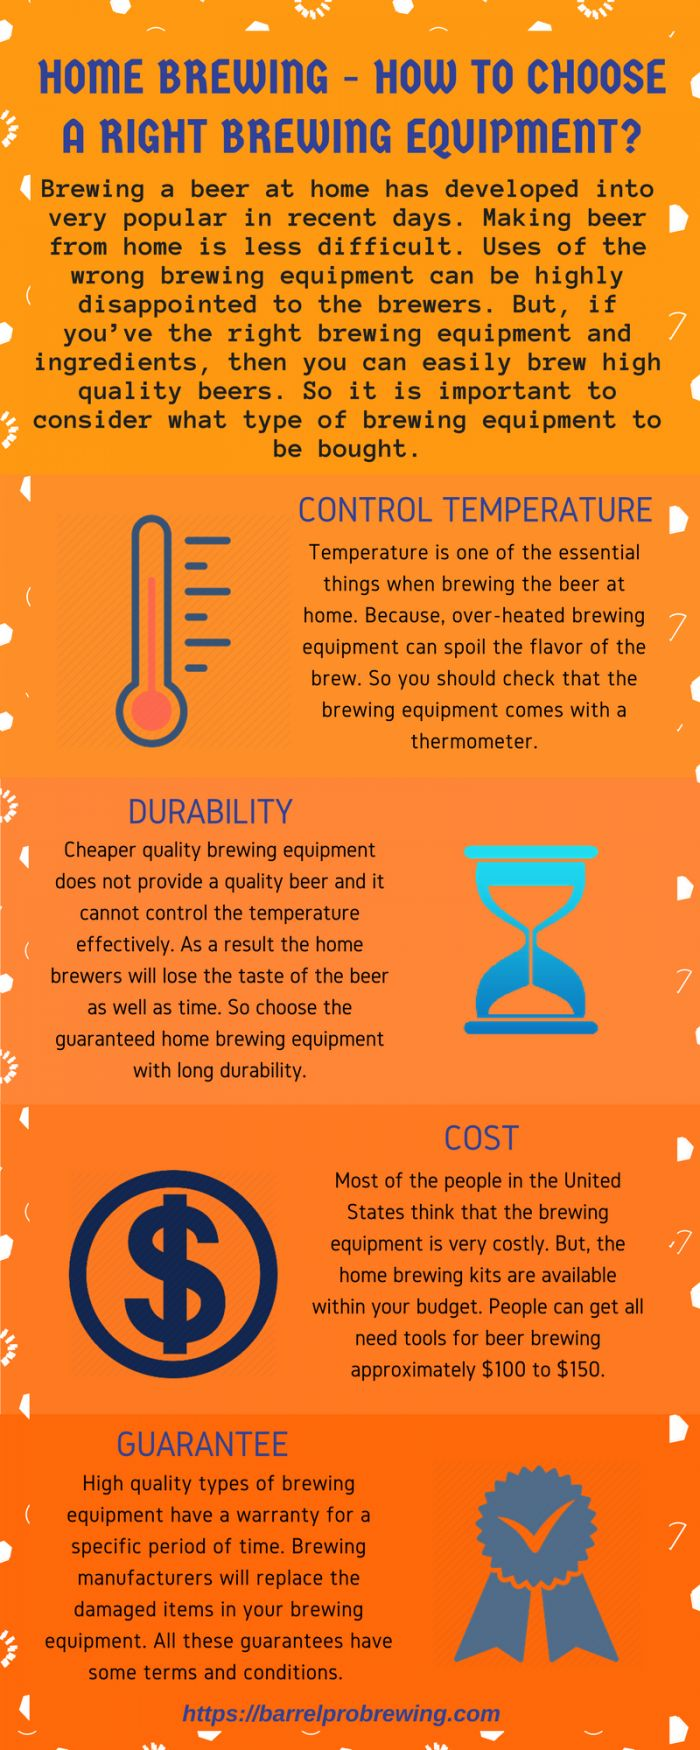 Sweetwater purchases pyramid brewing equipment plans to build second - Home Brewing Way To Choose A Right Brewing Equipment Infographics